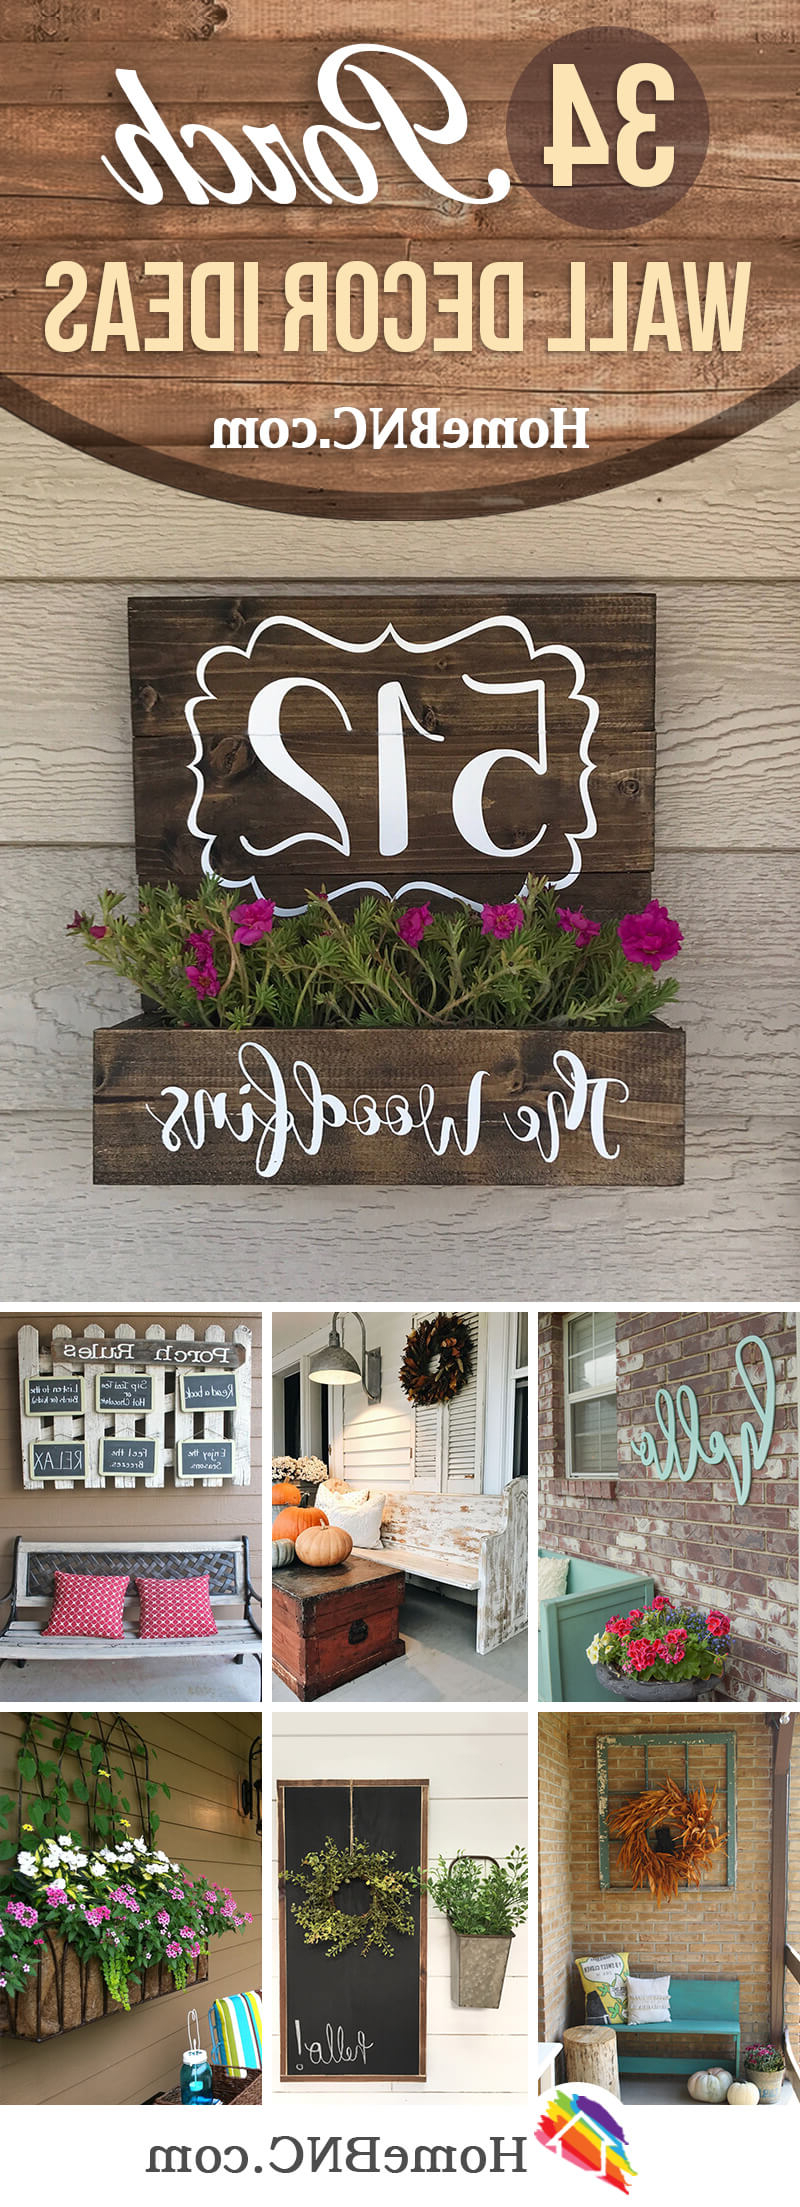 'porch Rules' Metal Wall Décor Regarding Current 34 Best Porch Wall Decor Ideas And Designs For (View 10 of 20)